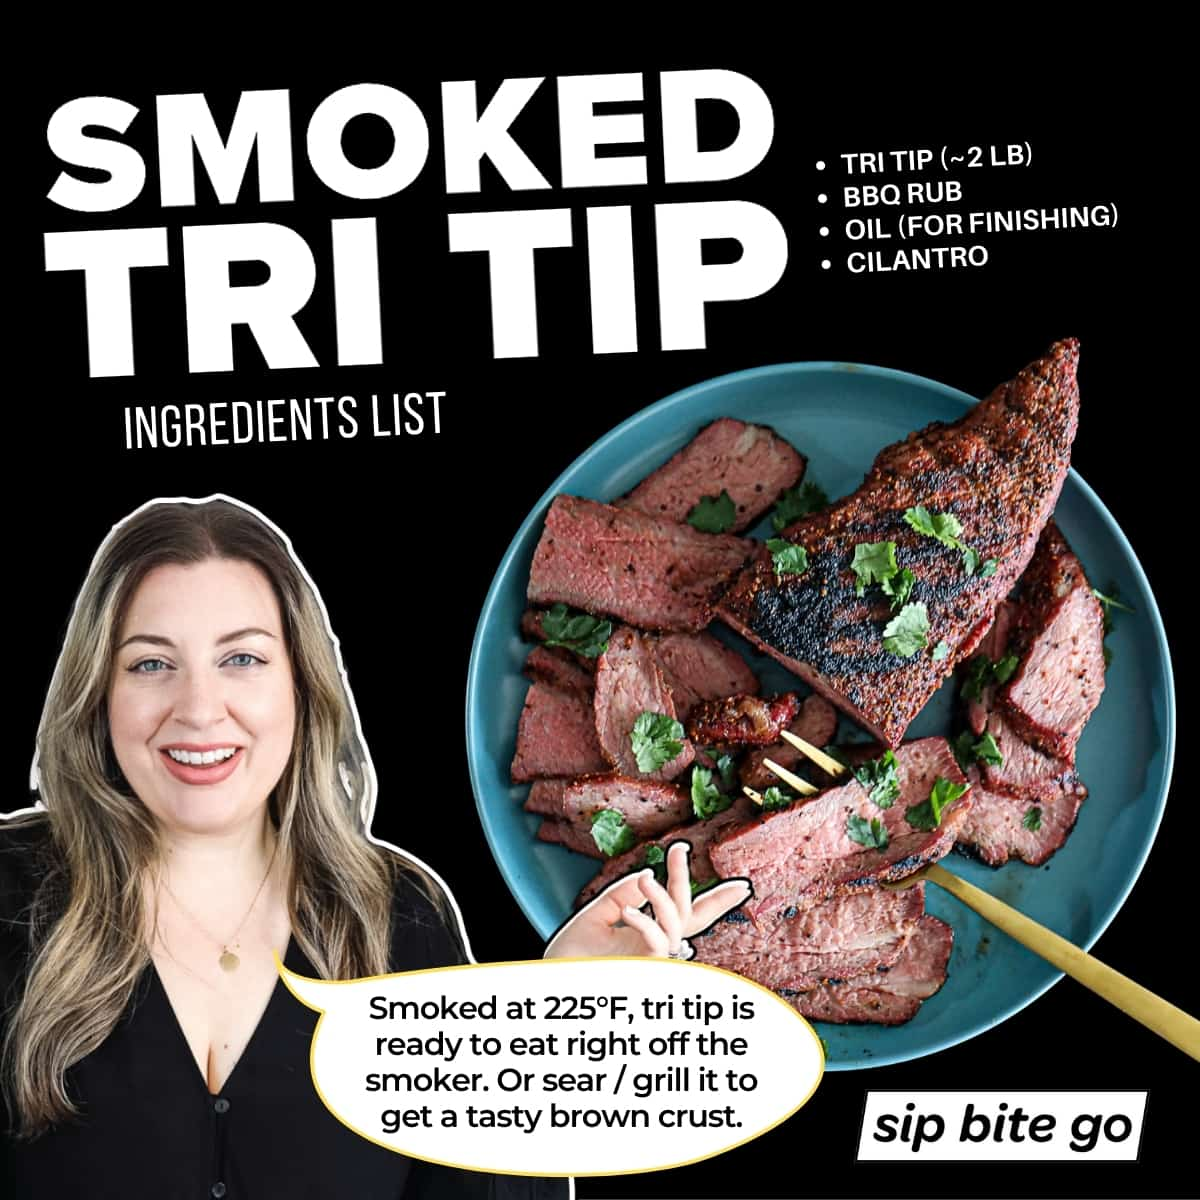 Infographic with smoked tri tip ingredients including bbq rub seasoning